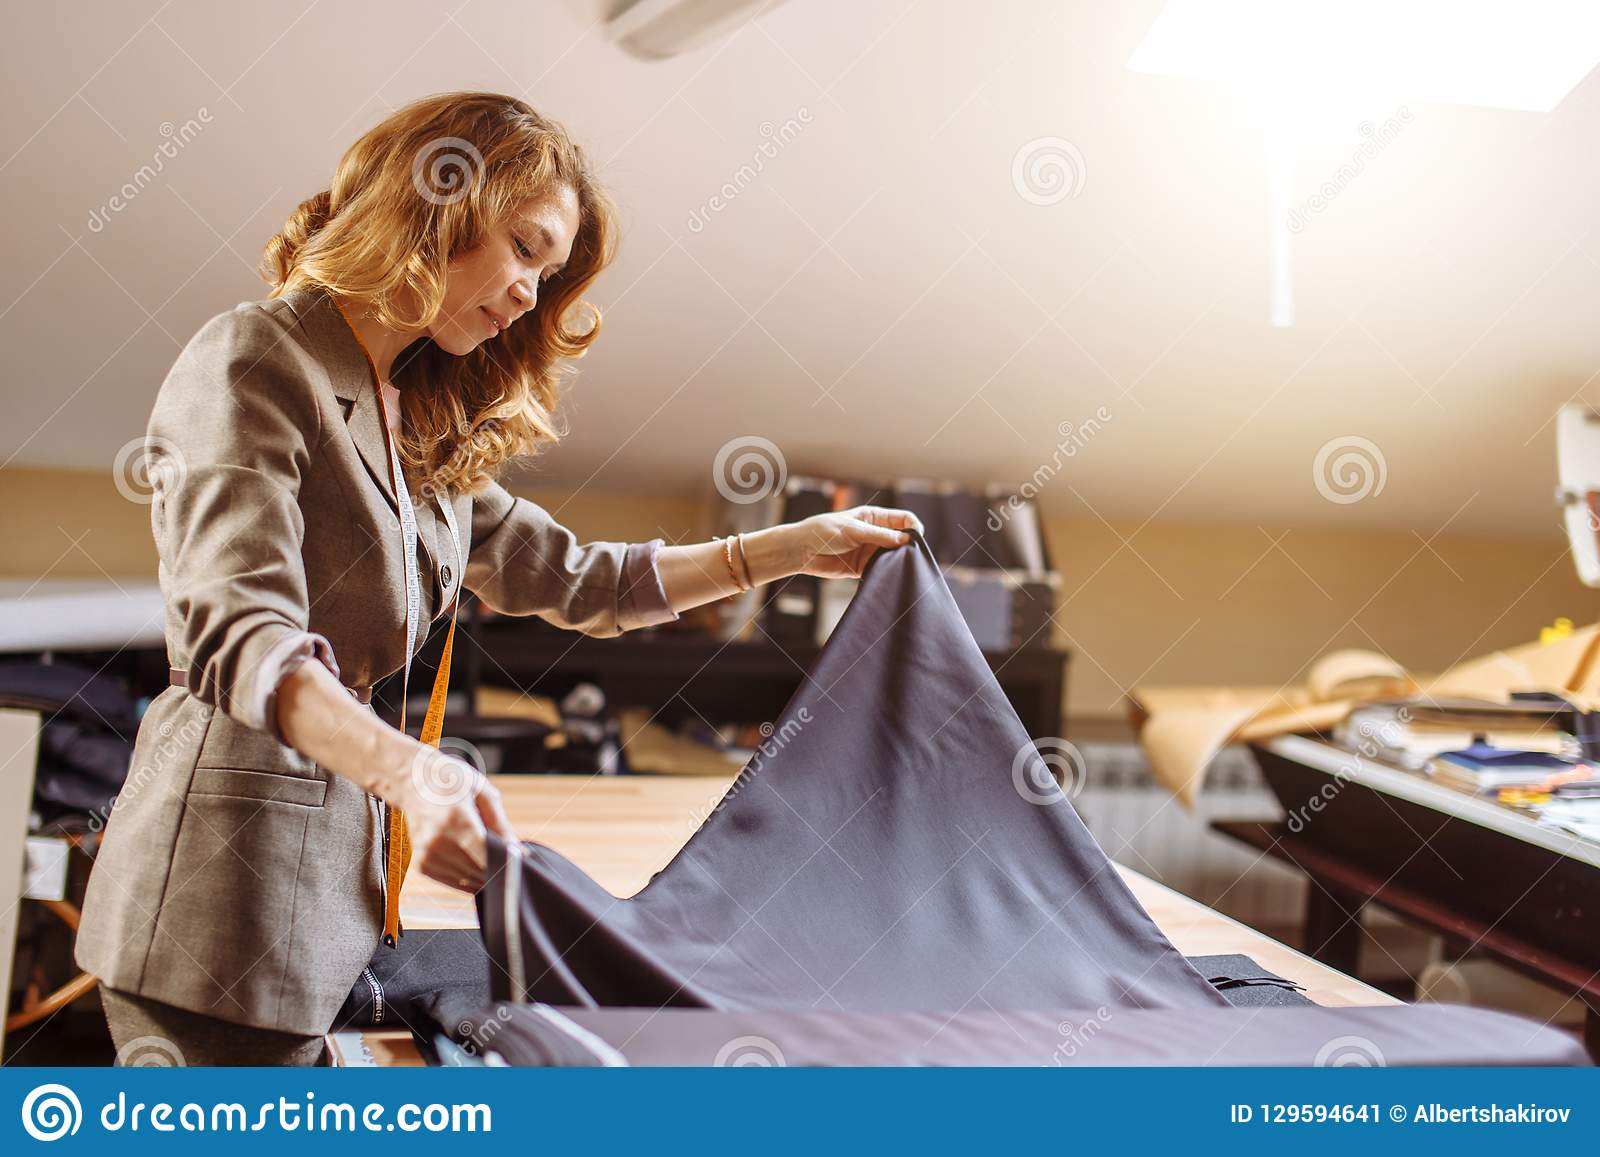 Female fashion designer working on suiting fabric with dressmaking accessories on table